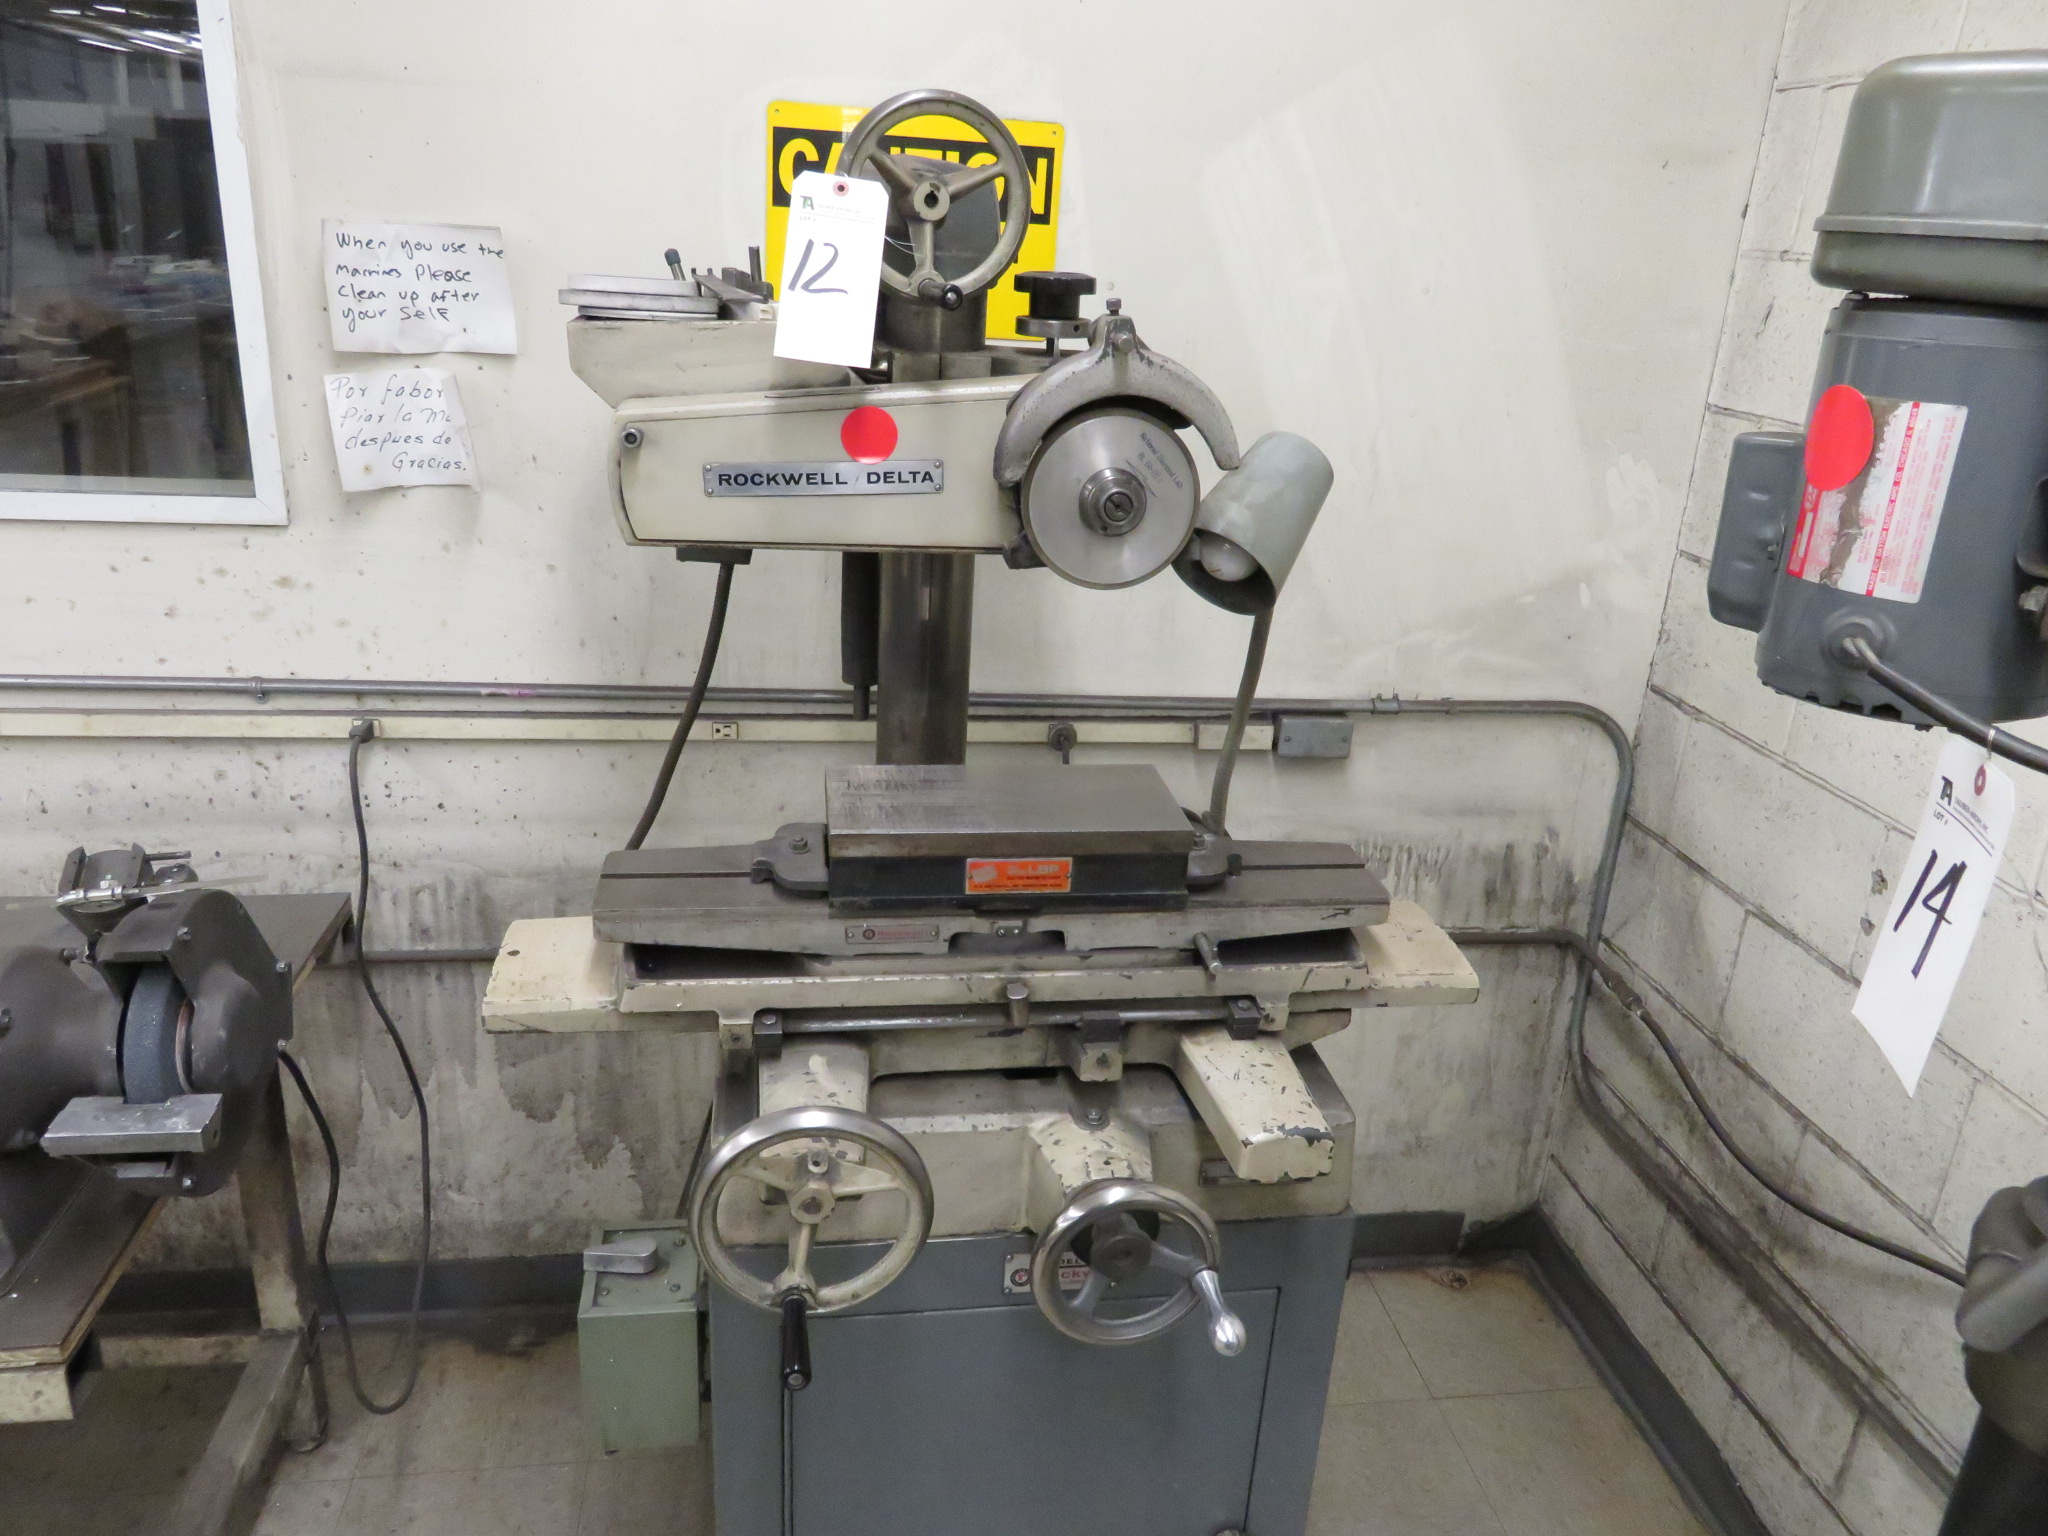 Rockwell/Delta mod. 24-150, Surface Grinder w/ LBP Electric Magnetic Chuck 6 x 12; S/N 1581446